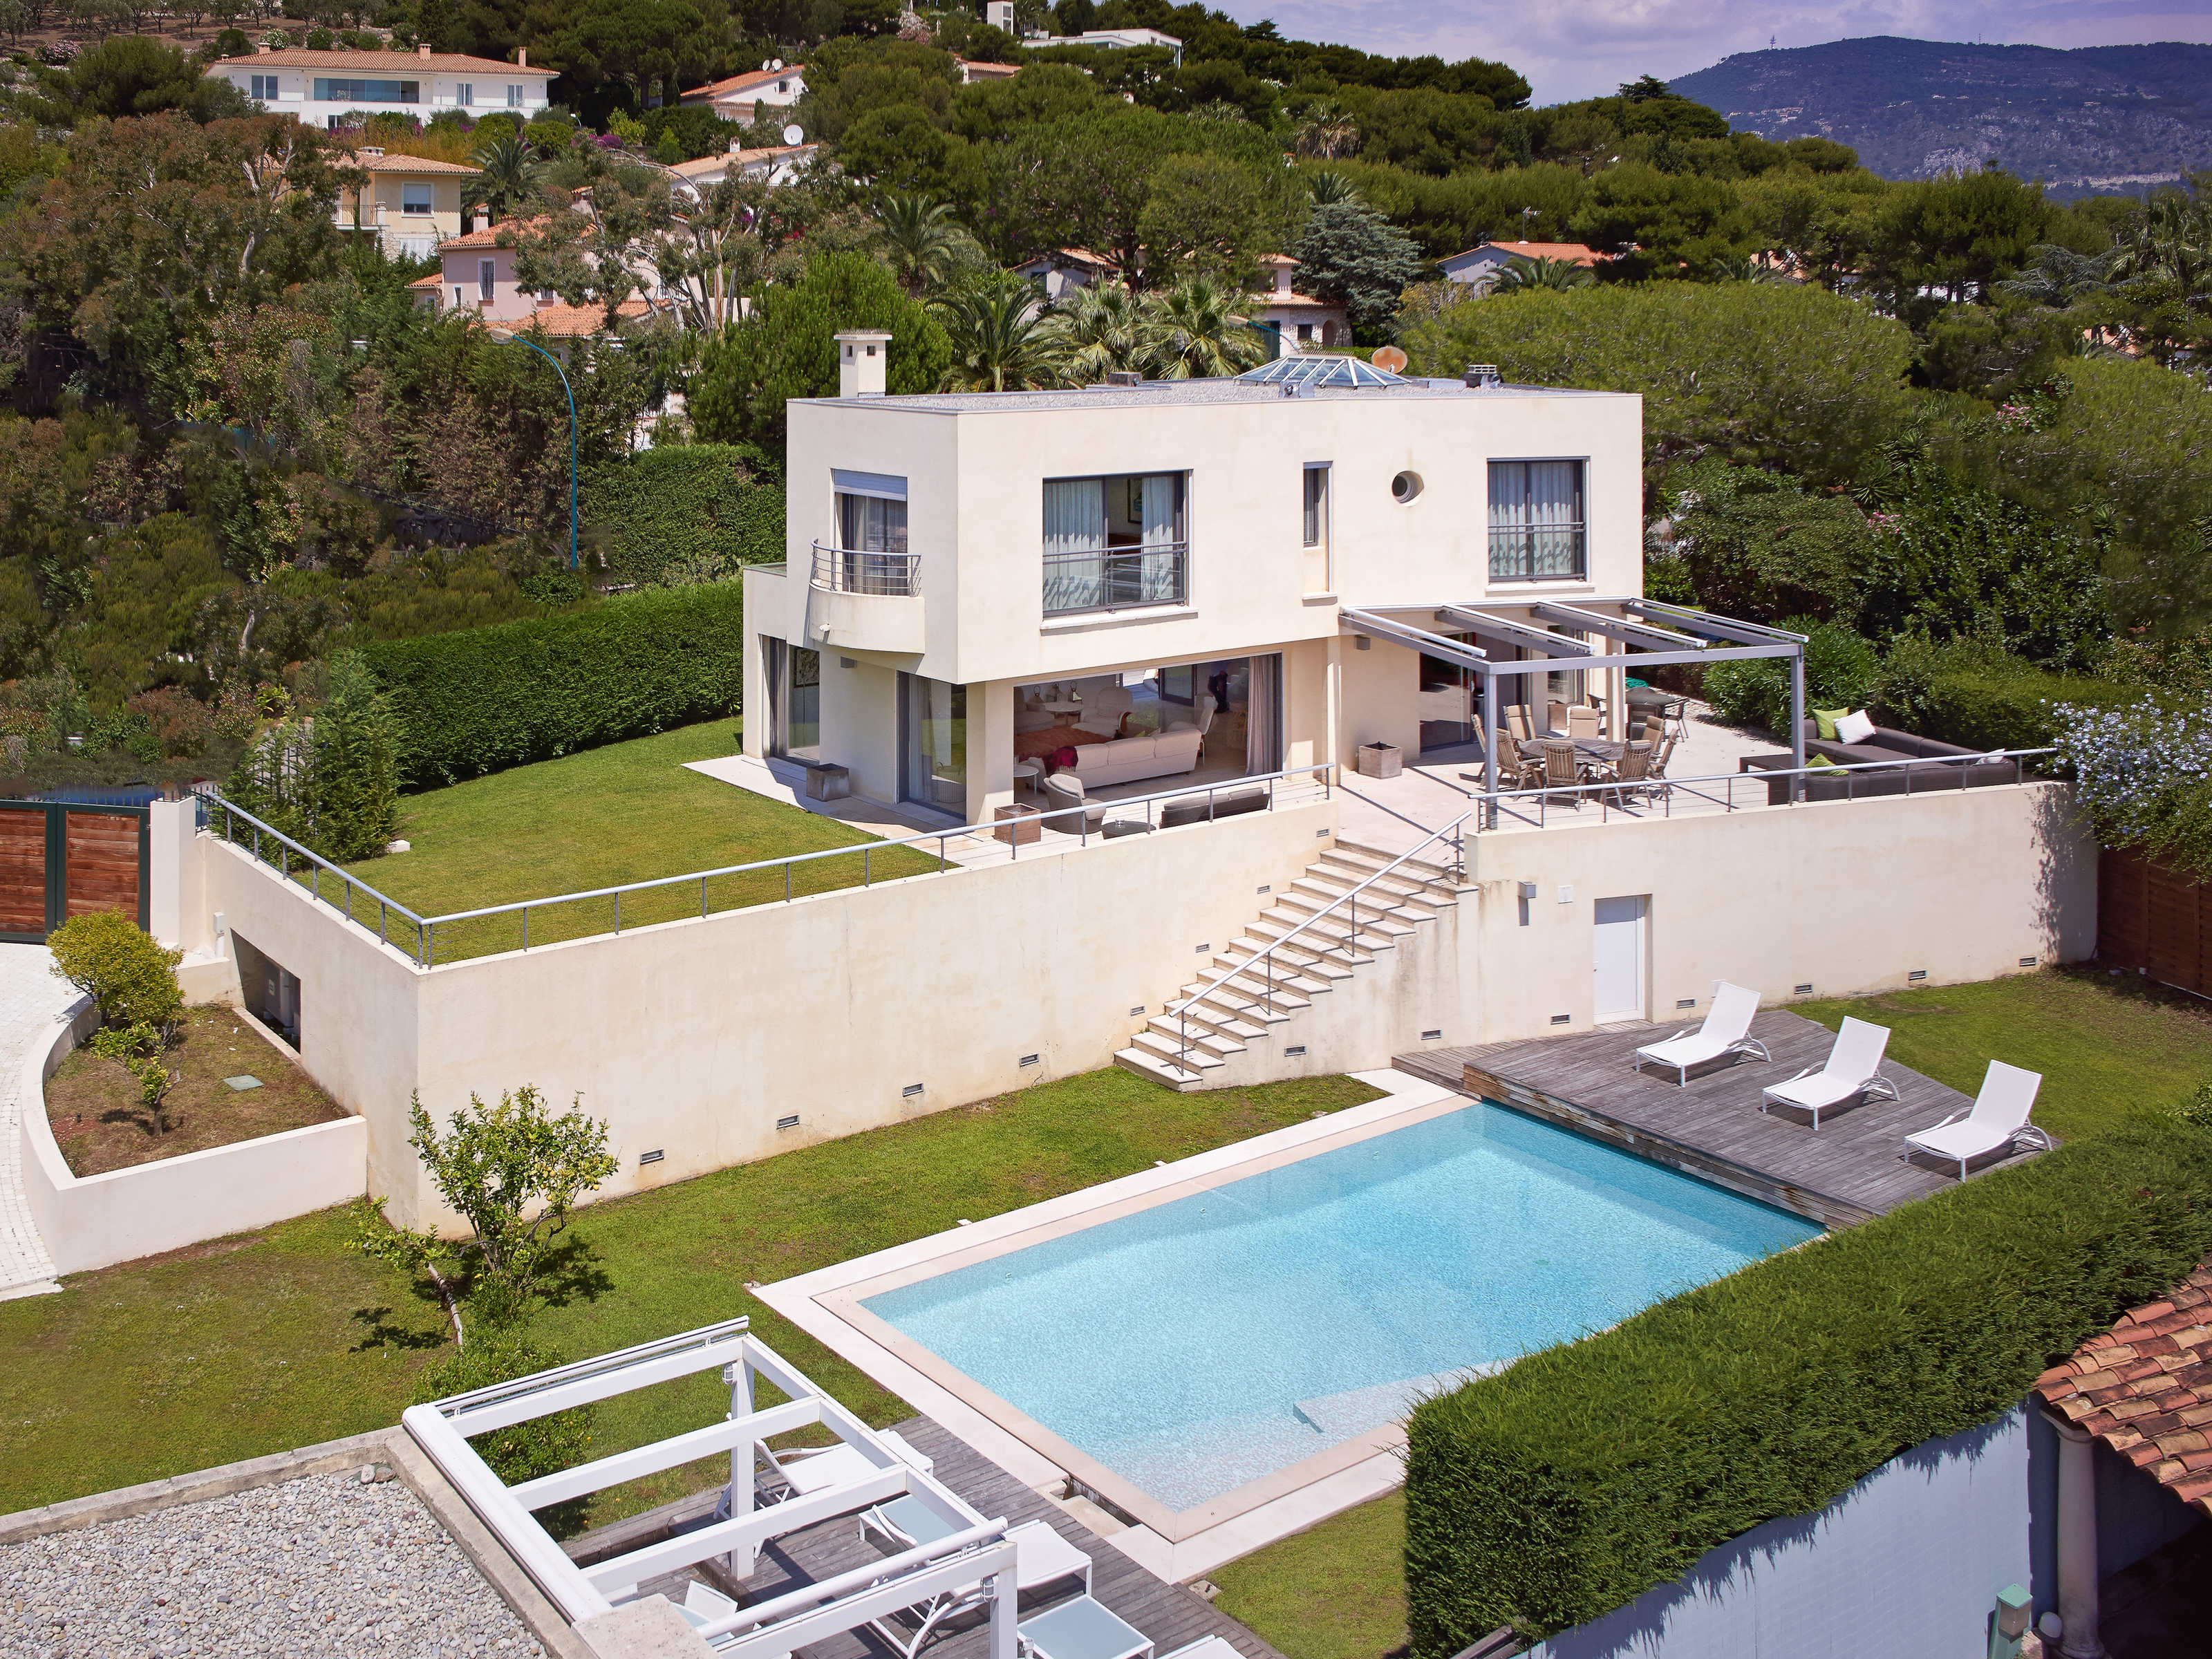 獨棟家庭住宅 為 出售 在 Contemporary Villa in the Heart of St Jean Cap Ferrat Saint Jean Cap Ferrat Saint Jean Cap Ferrat, 普羅旺斯阿爾卑斯藍色海岸 06230 法國